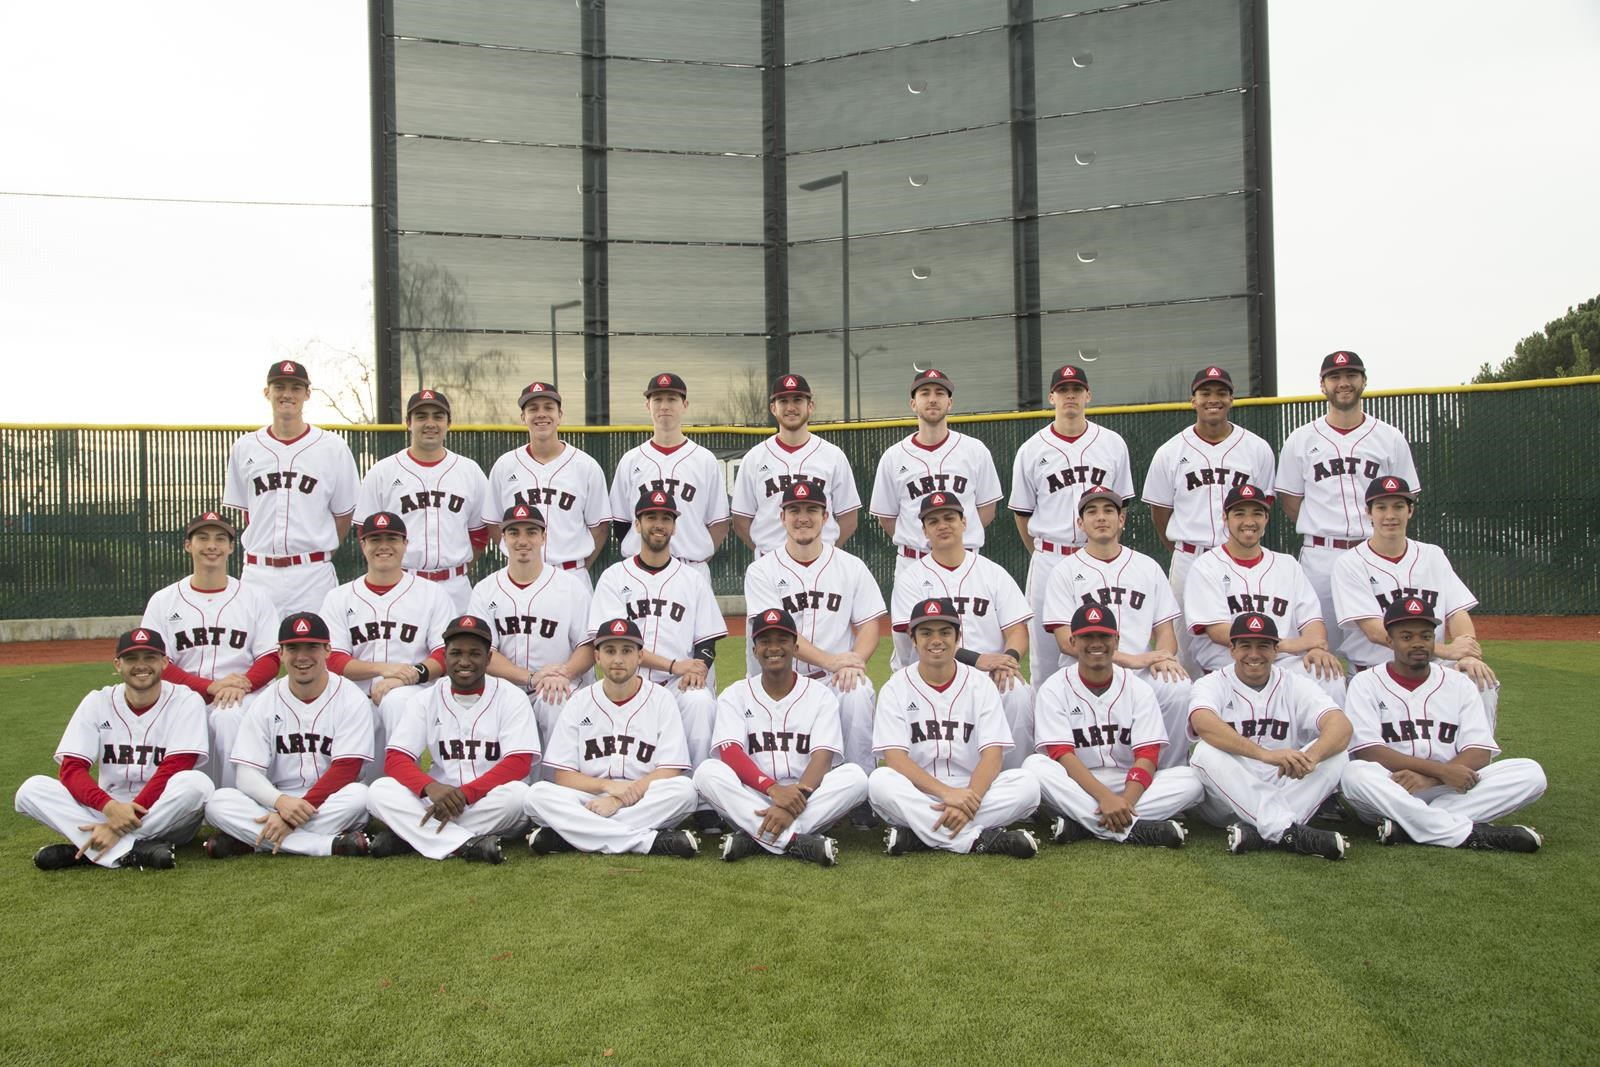 2016 Baseball Roster - Academy of Art University Athletics